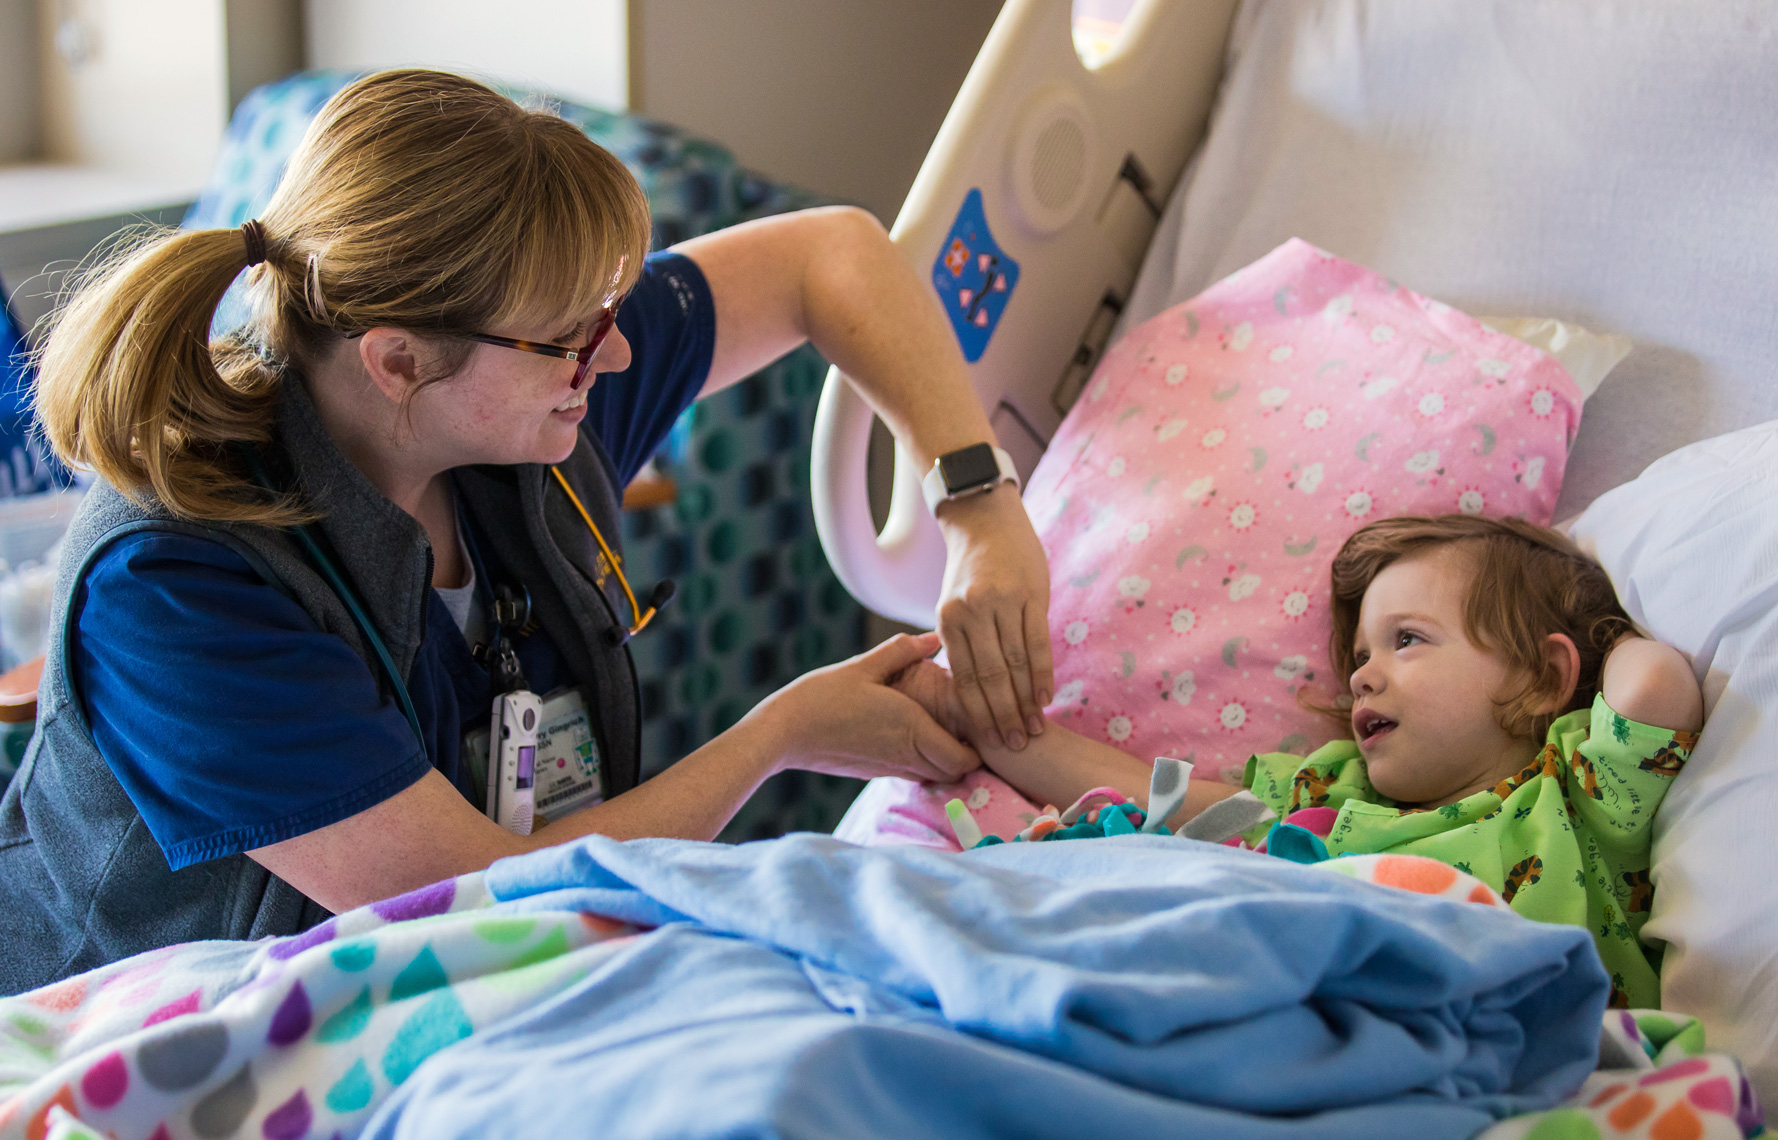 Nurse Cares for Pediatric Patient